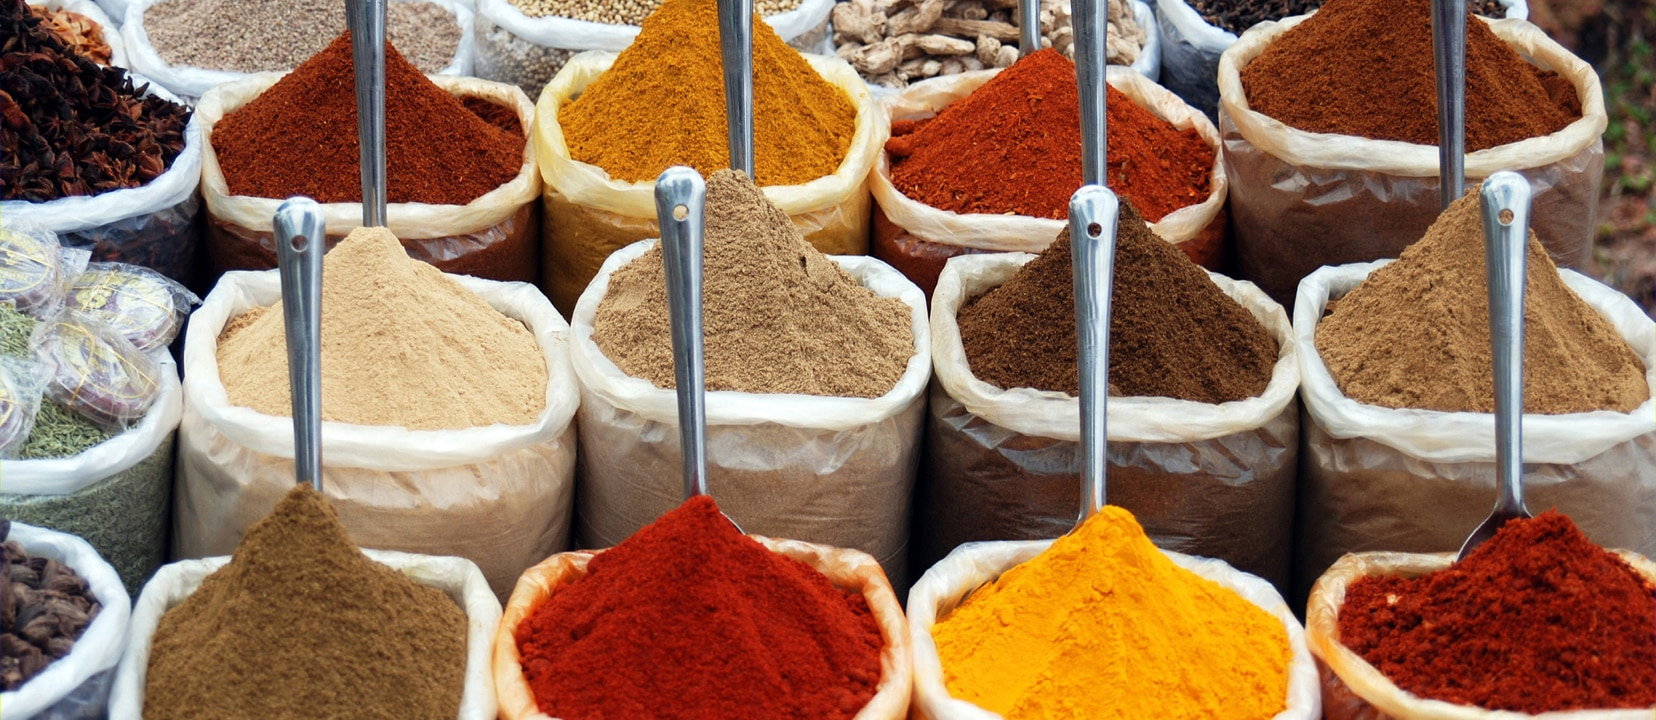 Treating Pancreatic Cancer with Turmeric Curcumin